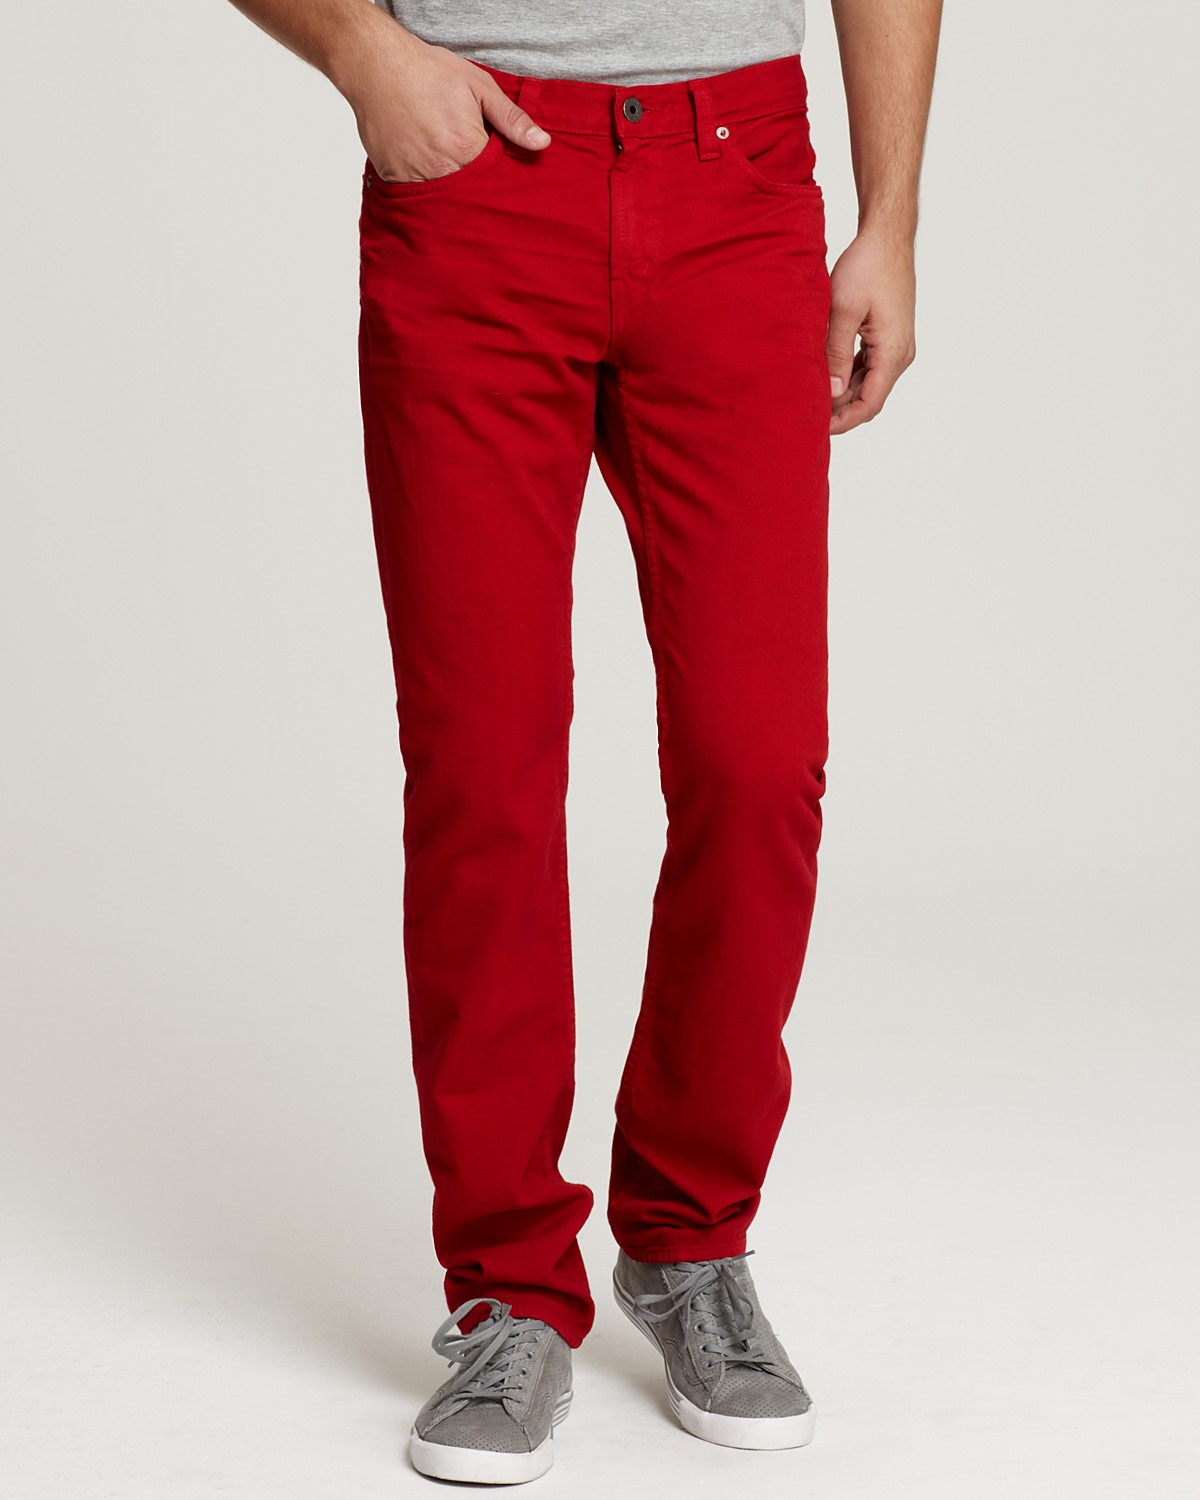 Find great deals on eBay for mens colored denim jeans. Shop with confidence.